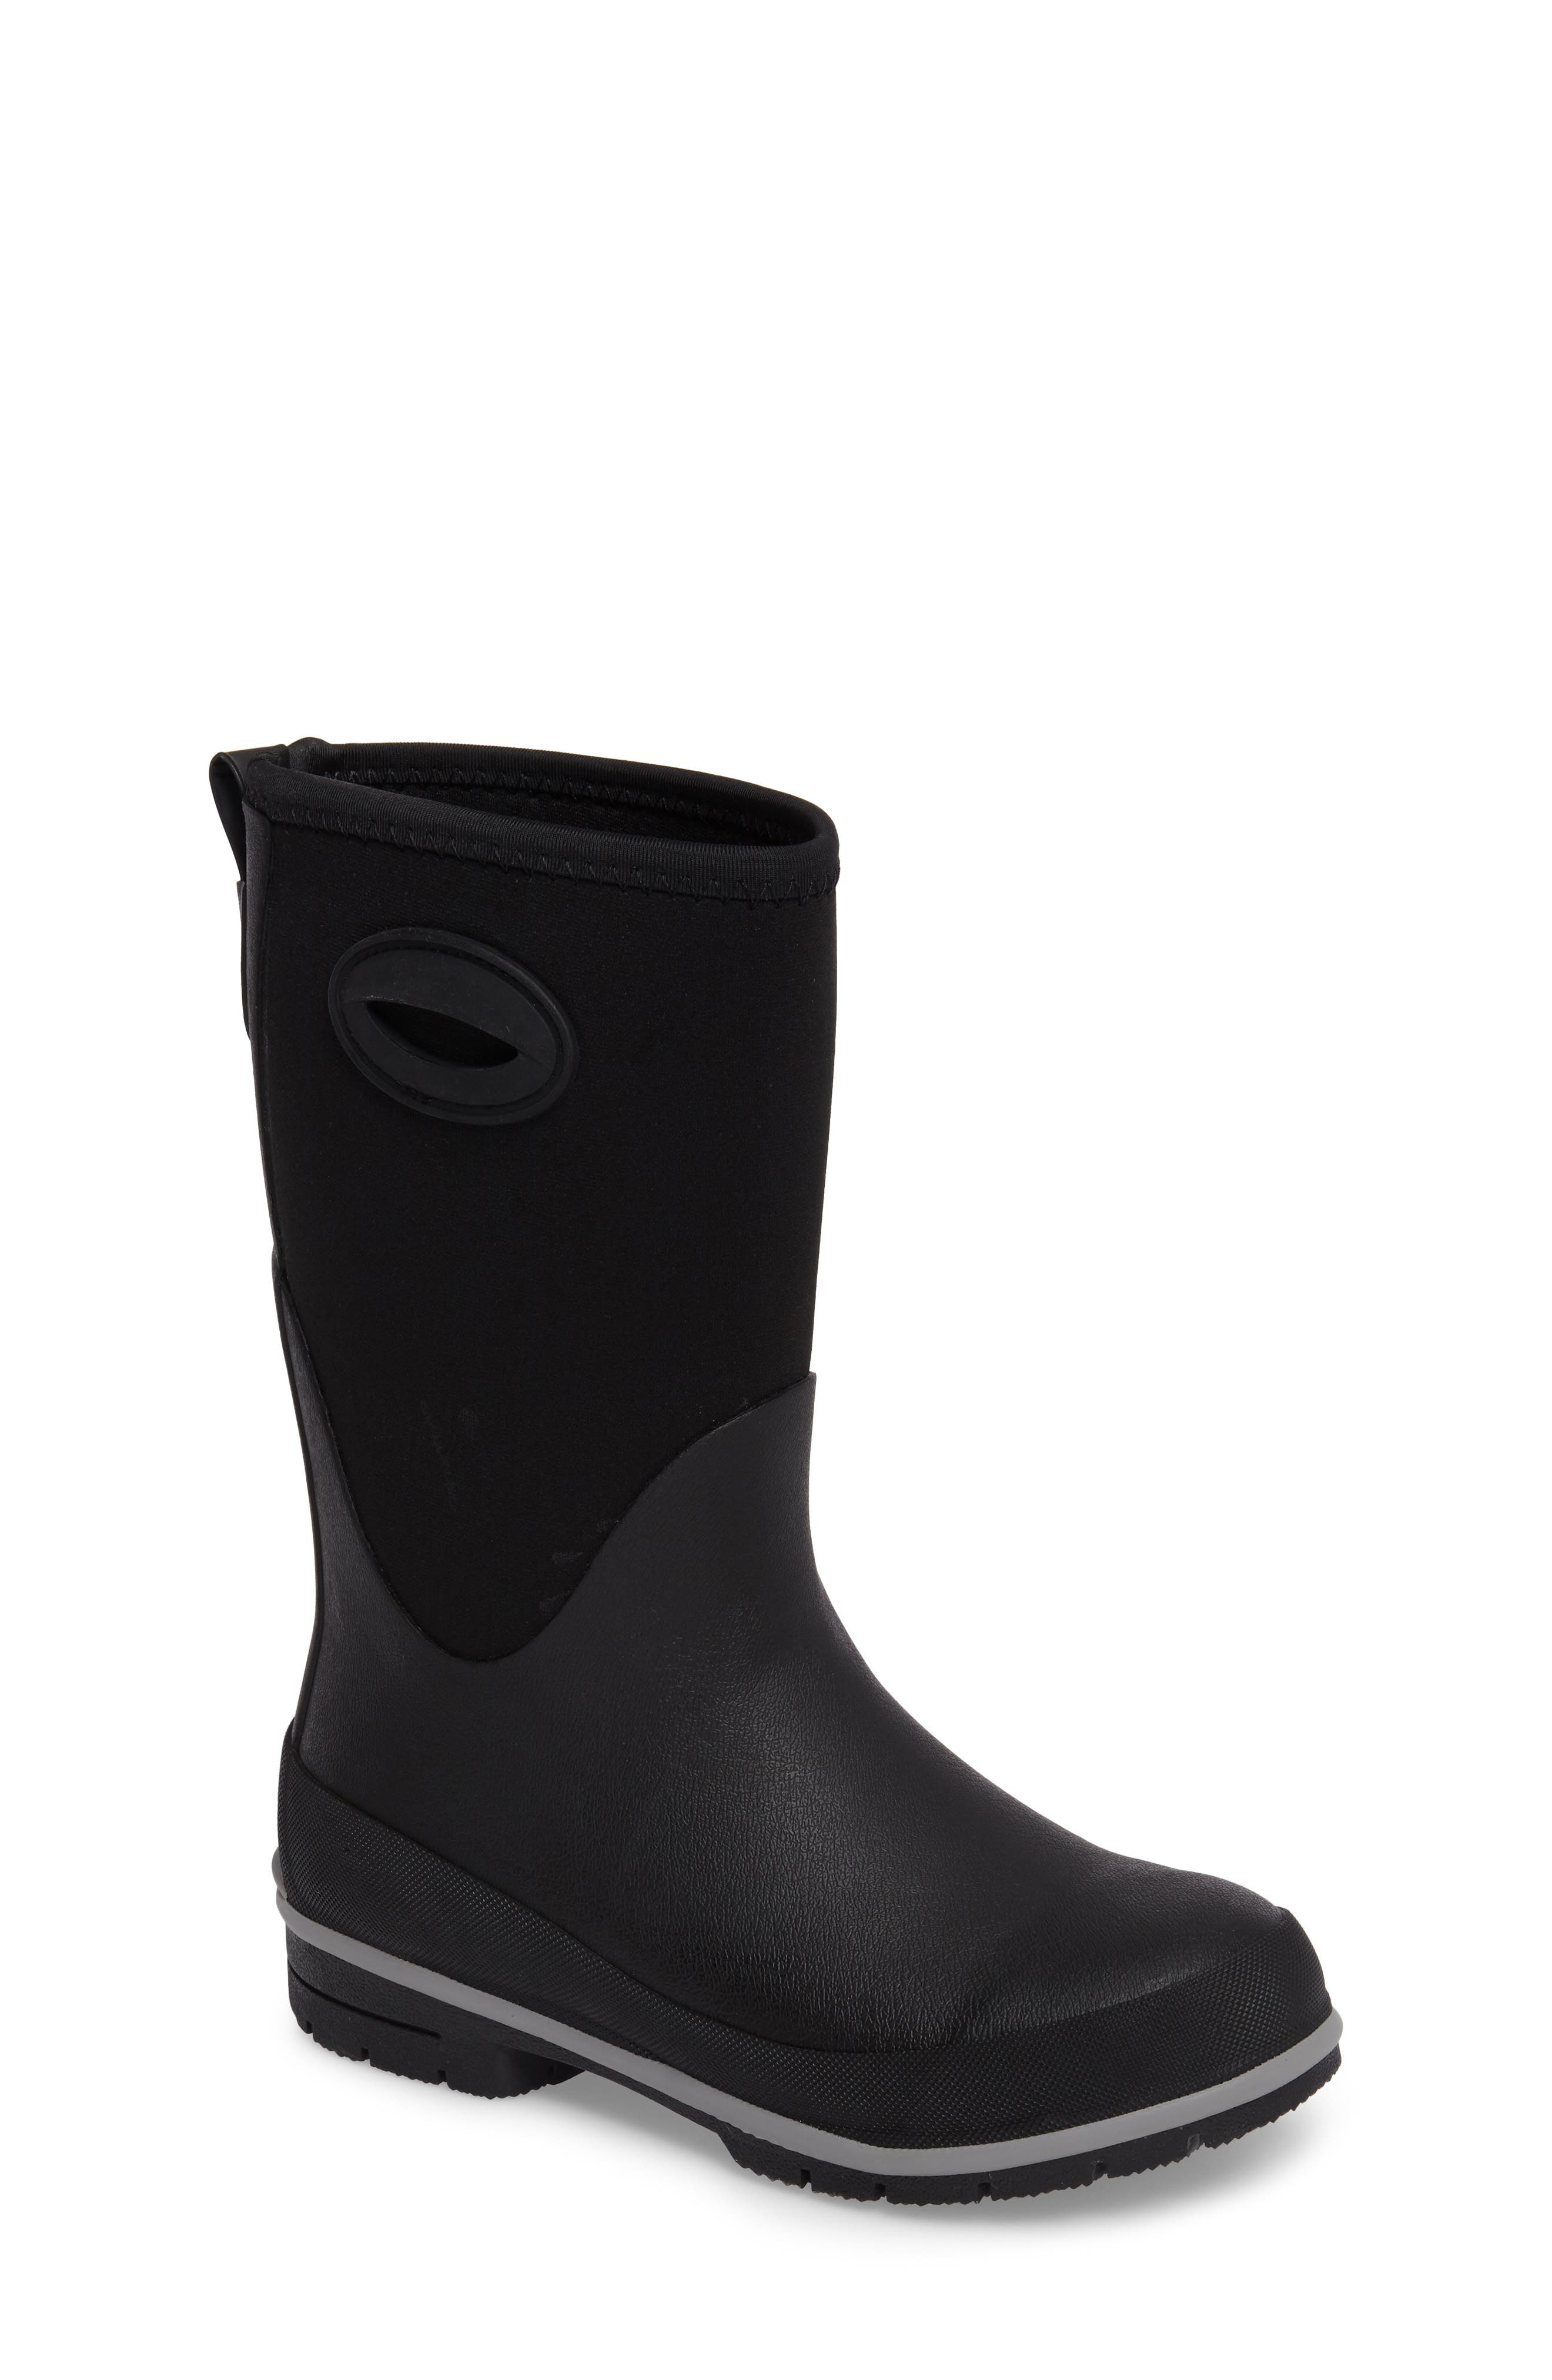 Neoprene Insulated Boot,                             Main thumbnail 1, color,                             001